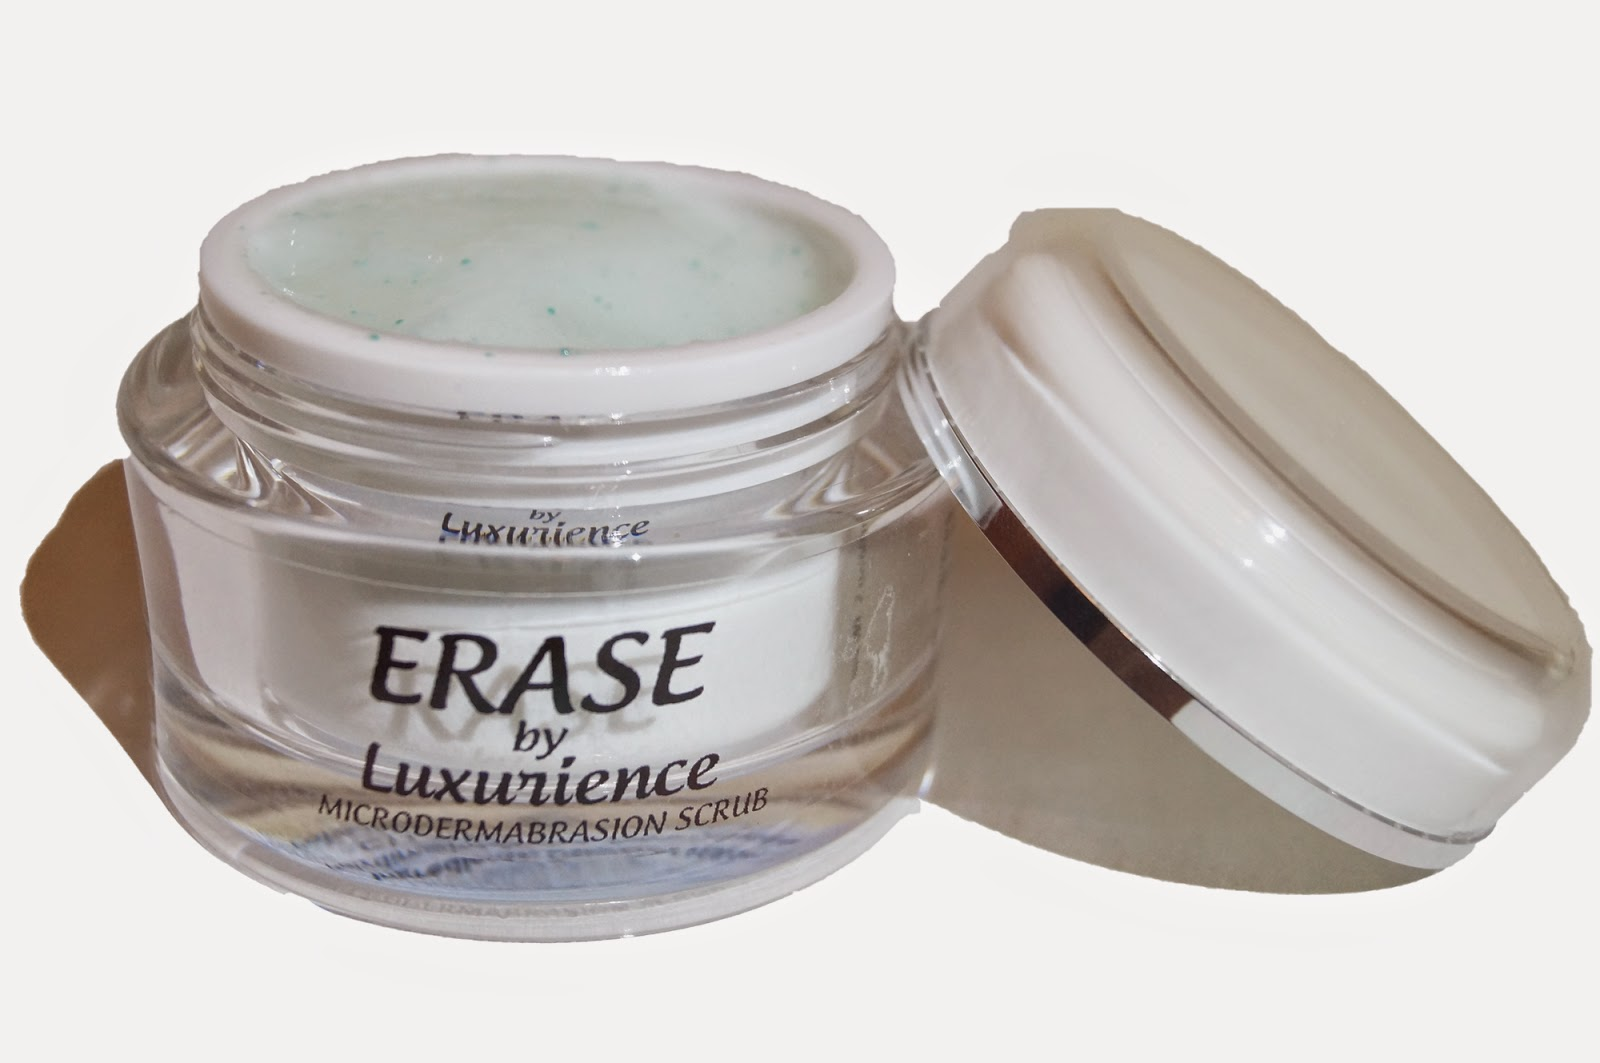 Erase by Luxurience